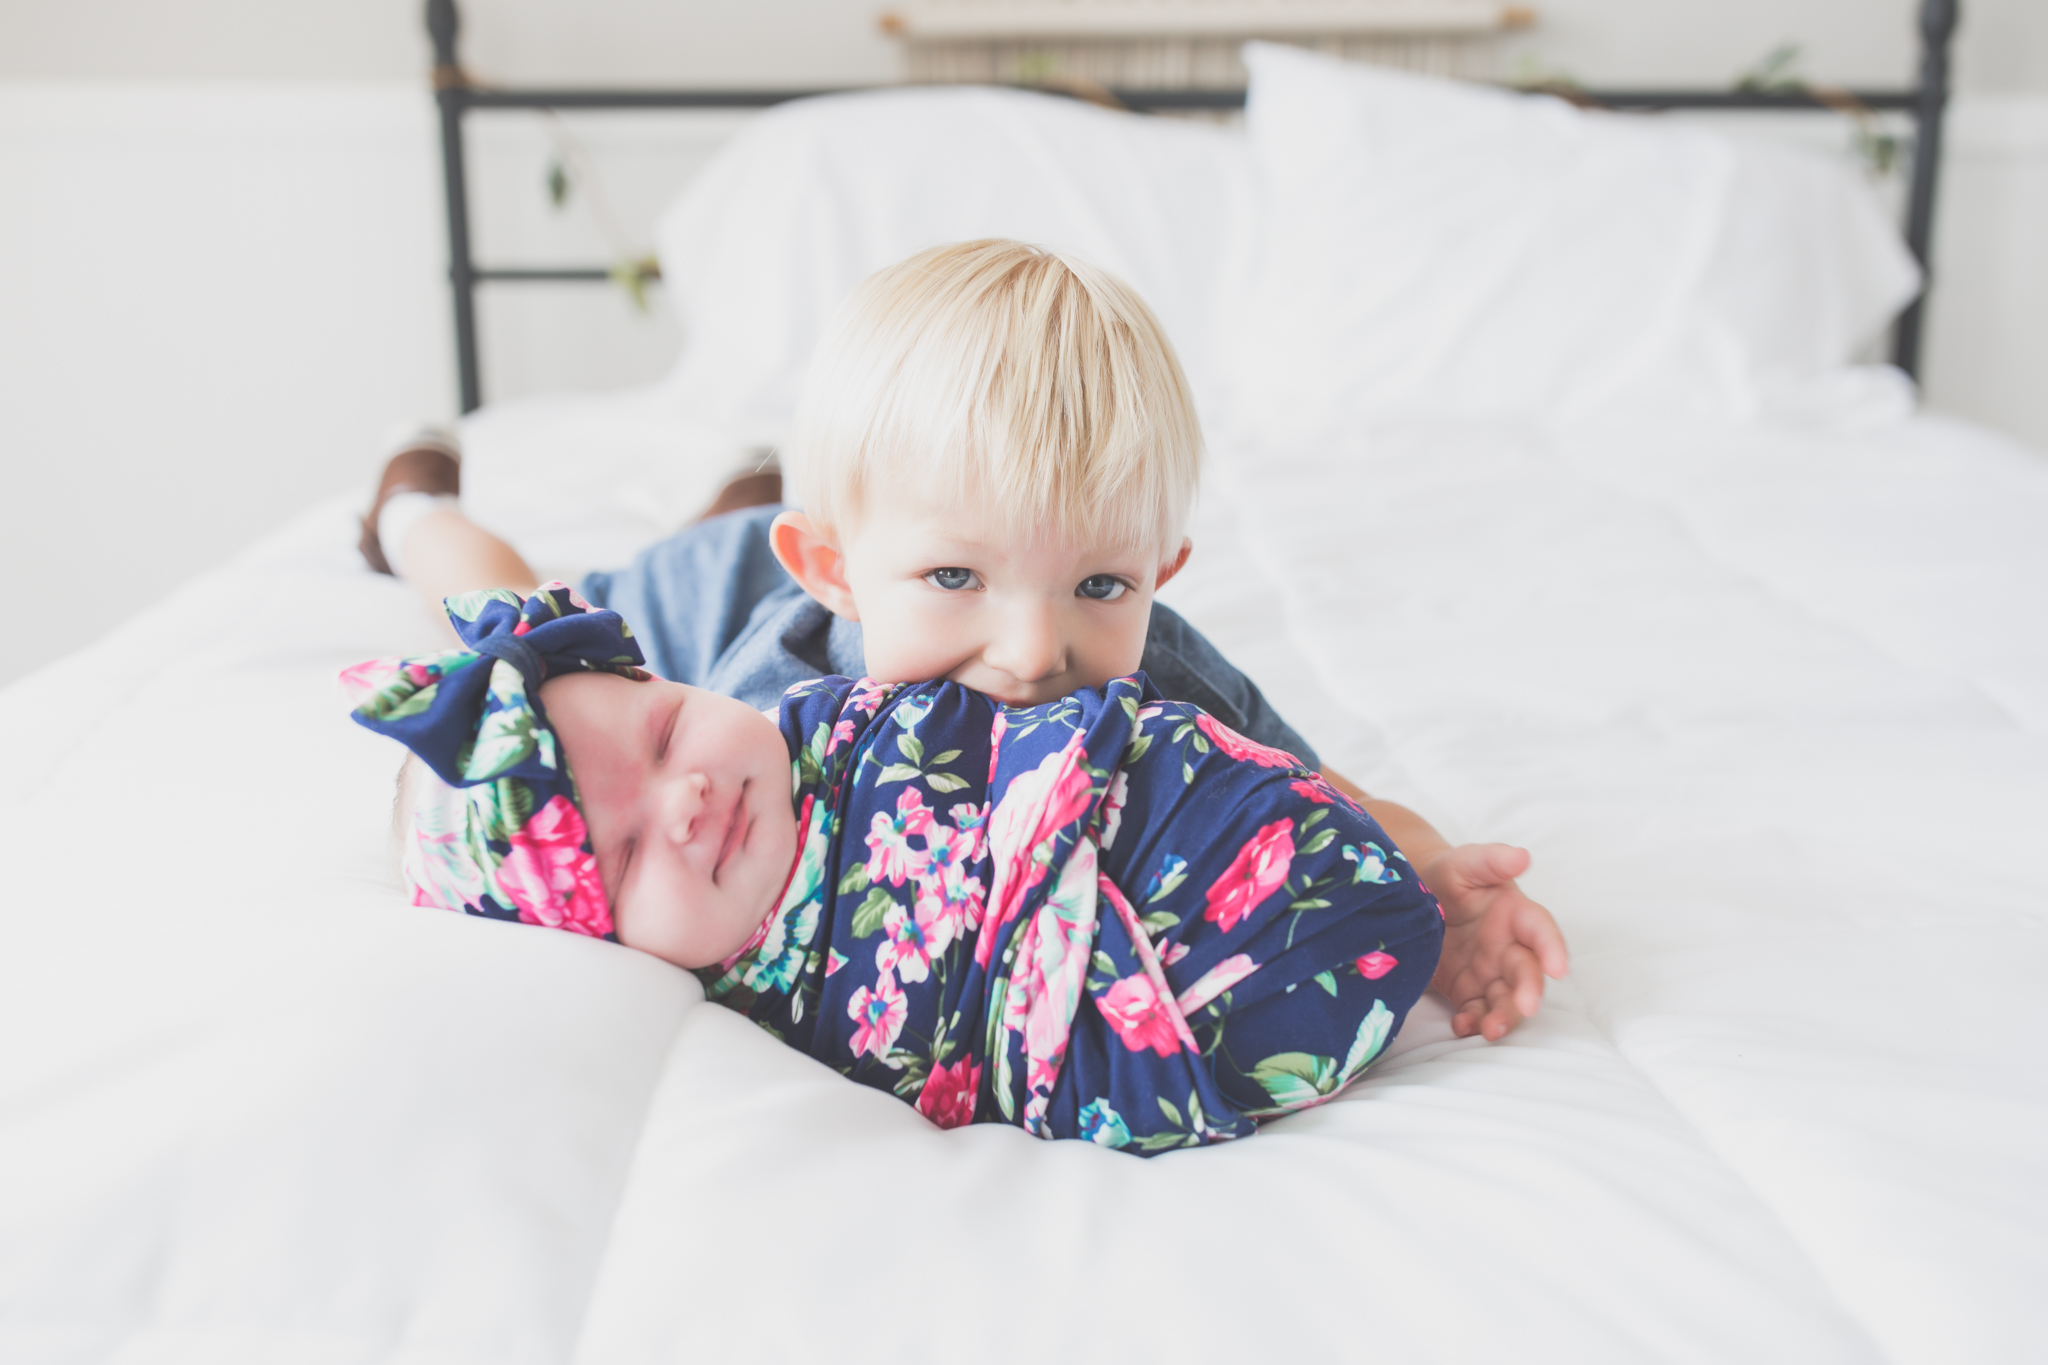 Sibling photos Newborn session photographer lifestyle studio - Cara Peterson Photography Rockford IL-5-3.jpg